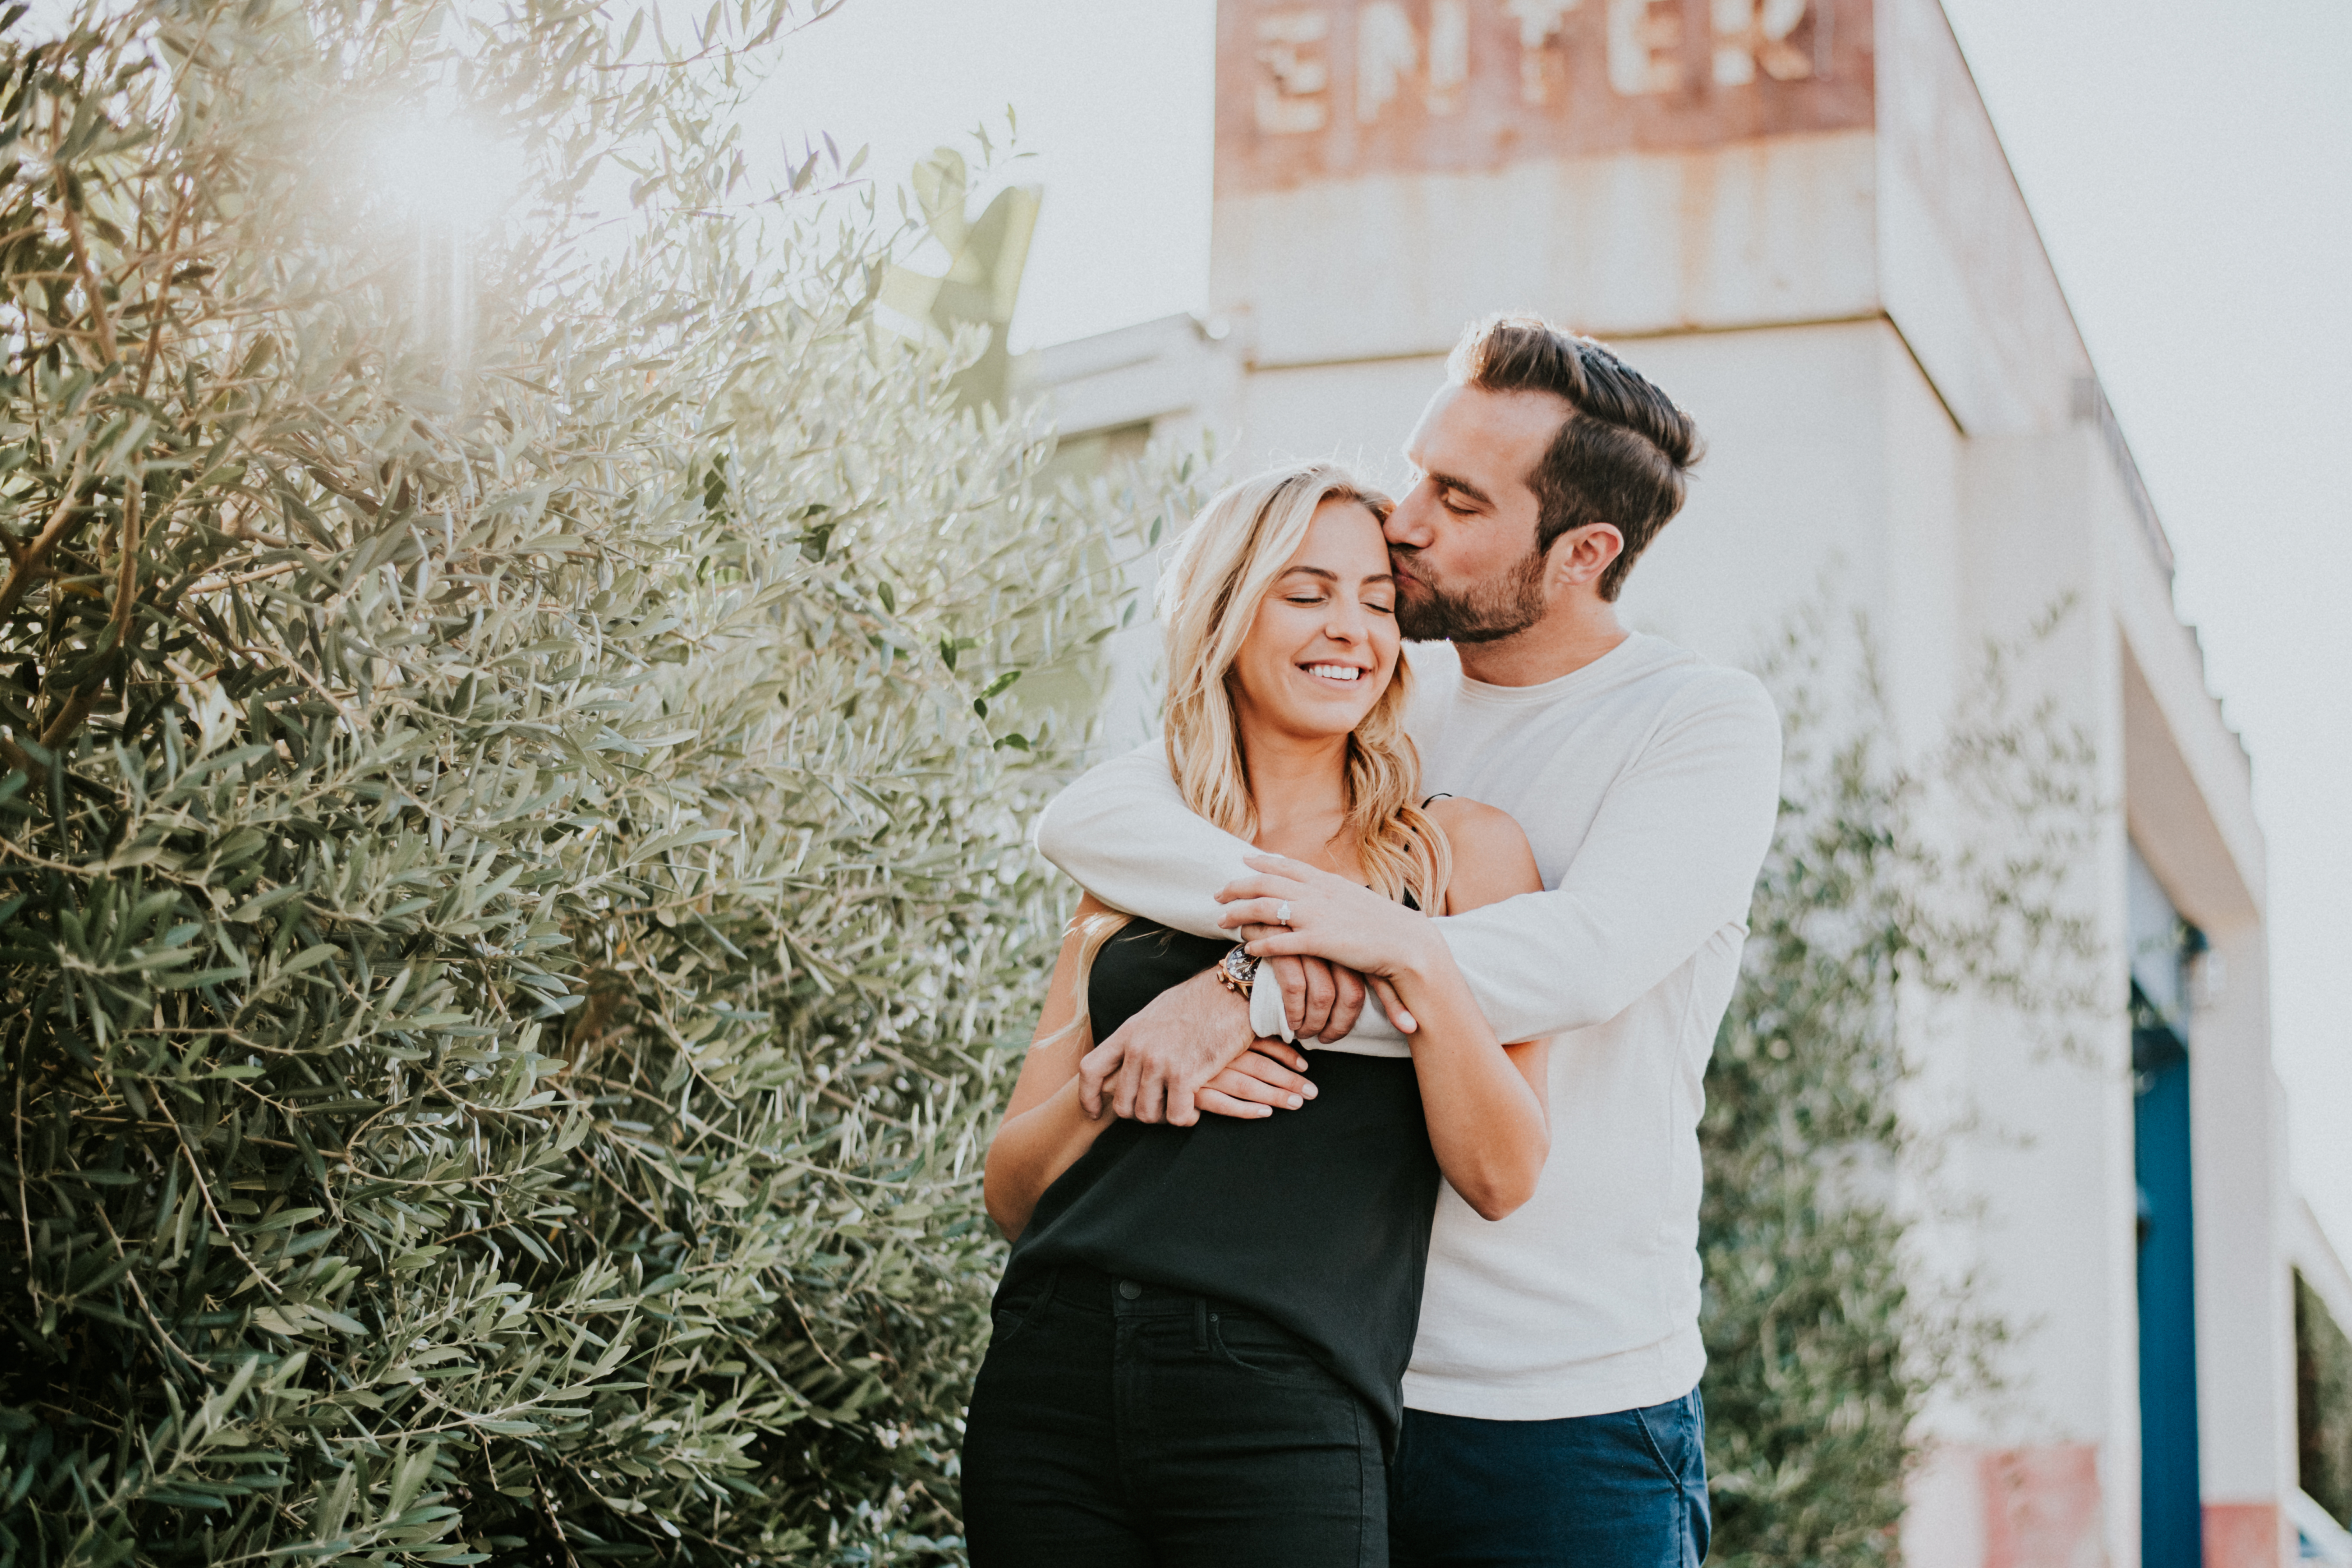 engagement photography photo shoot posed kiss on forehead malibu country mart los angeles